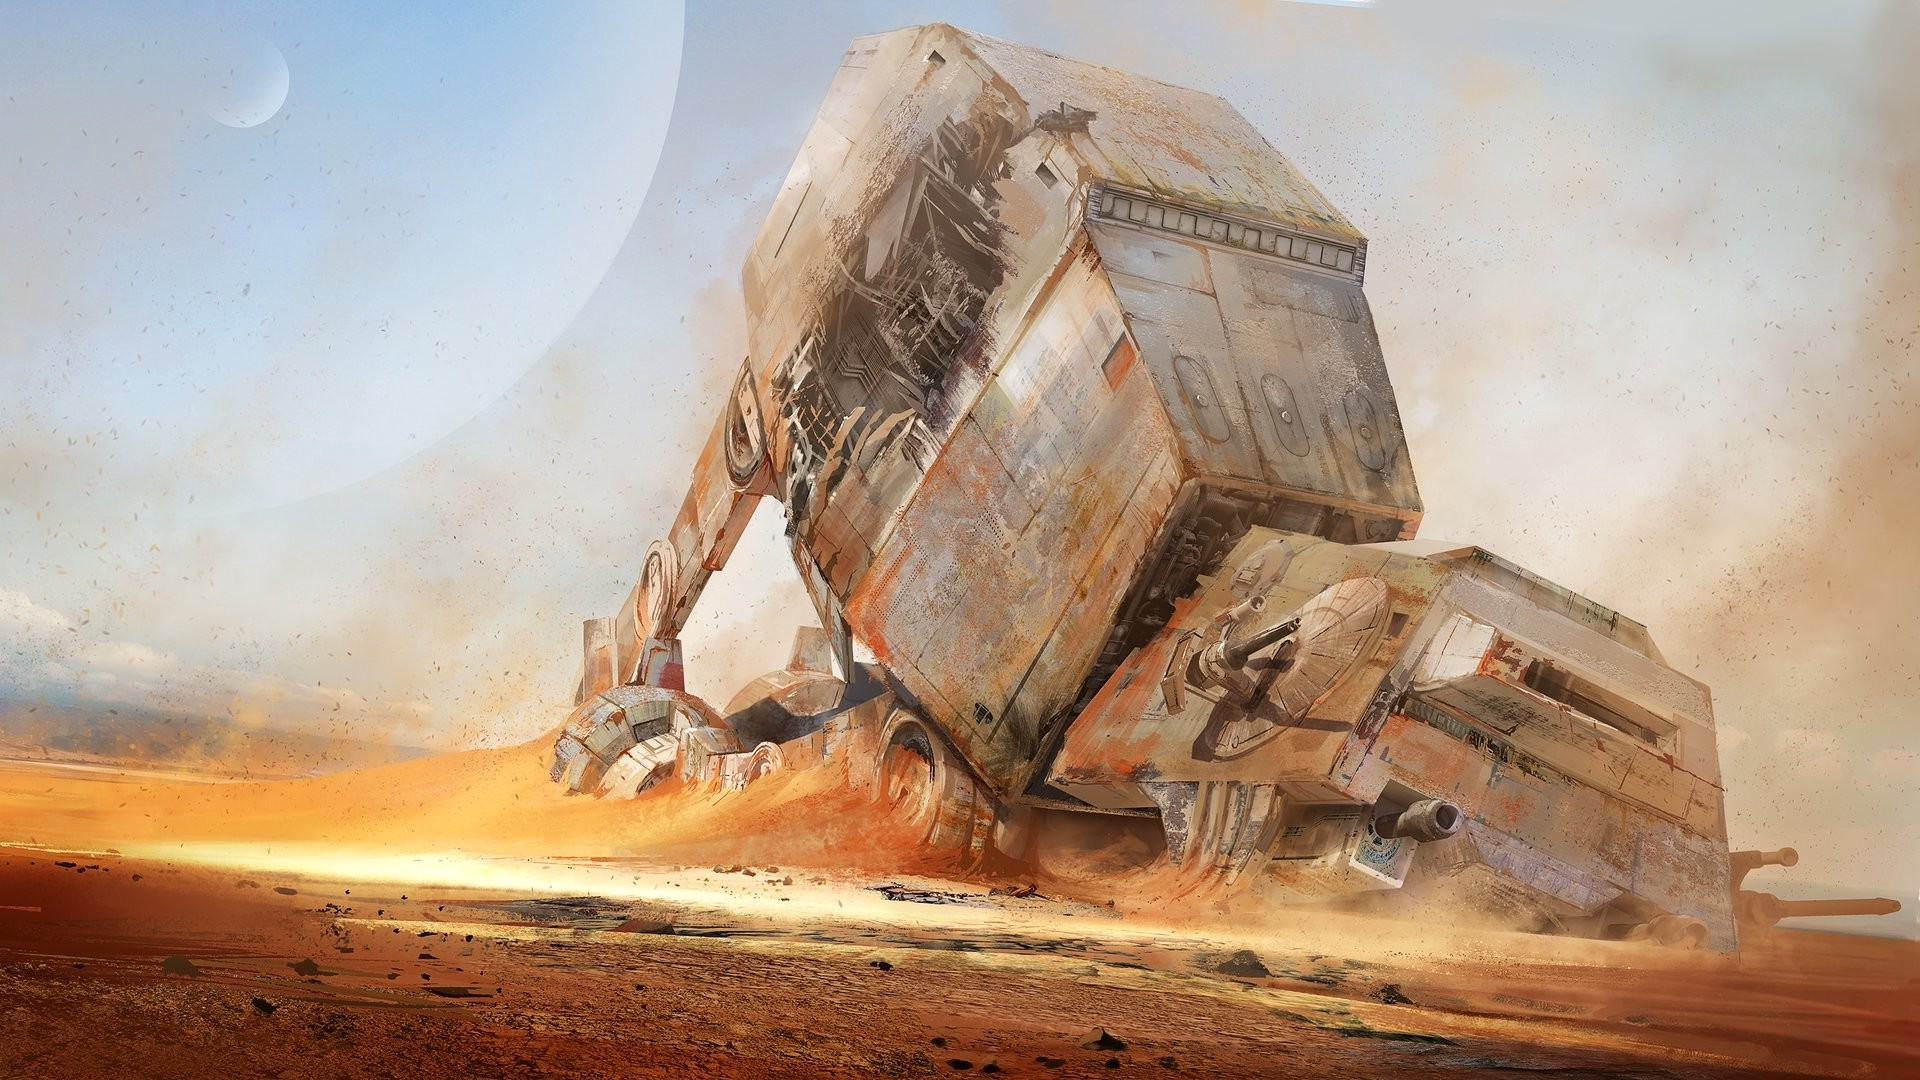 Free Download Star Wars Concept Art Wallpaper 67 Images 1920x1080